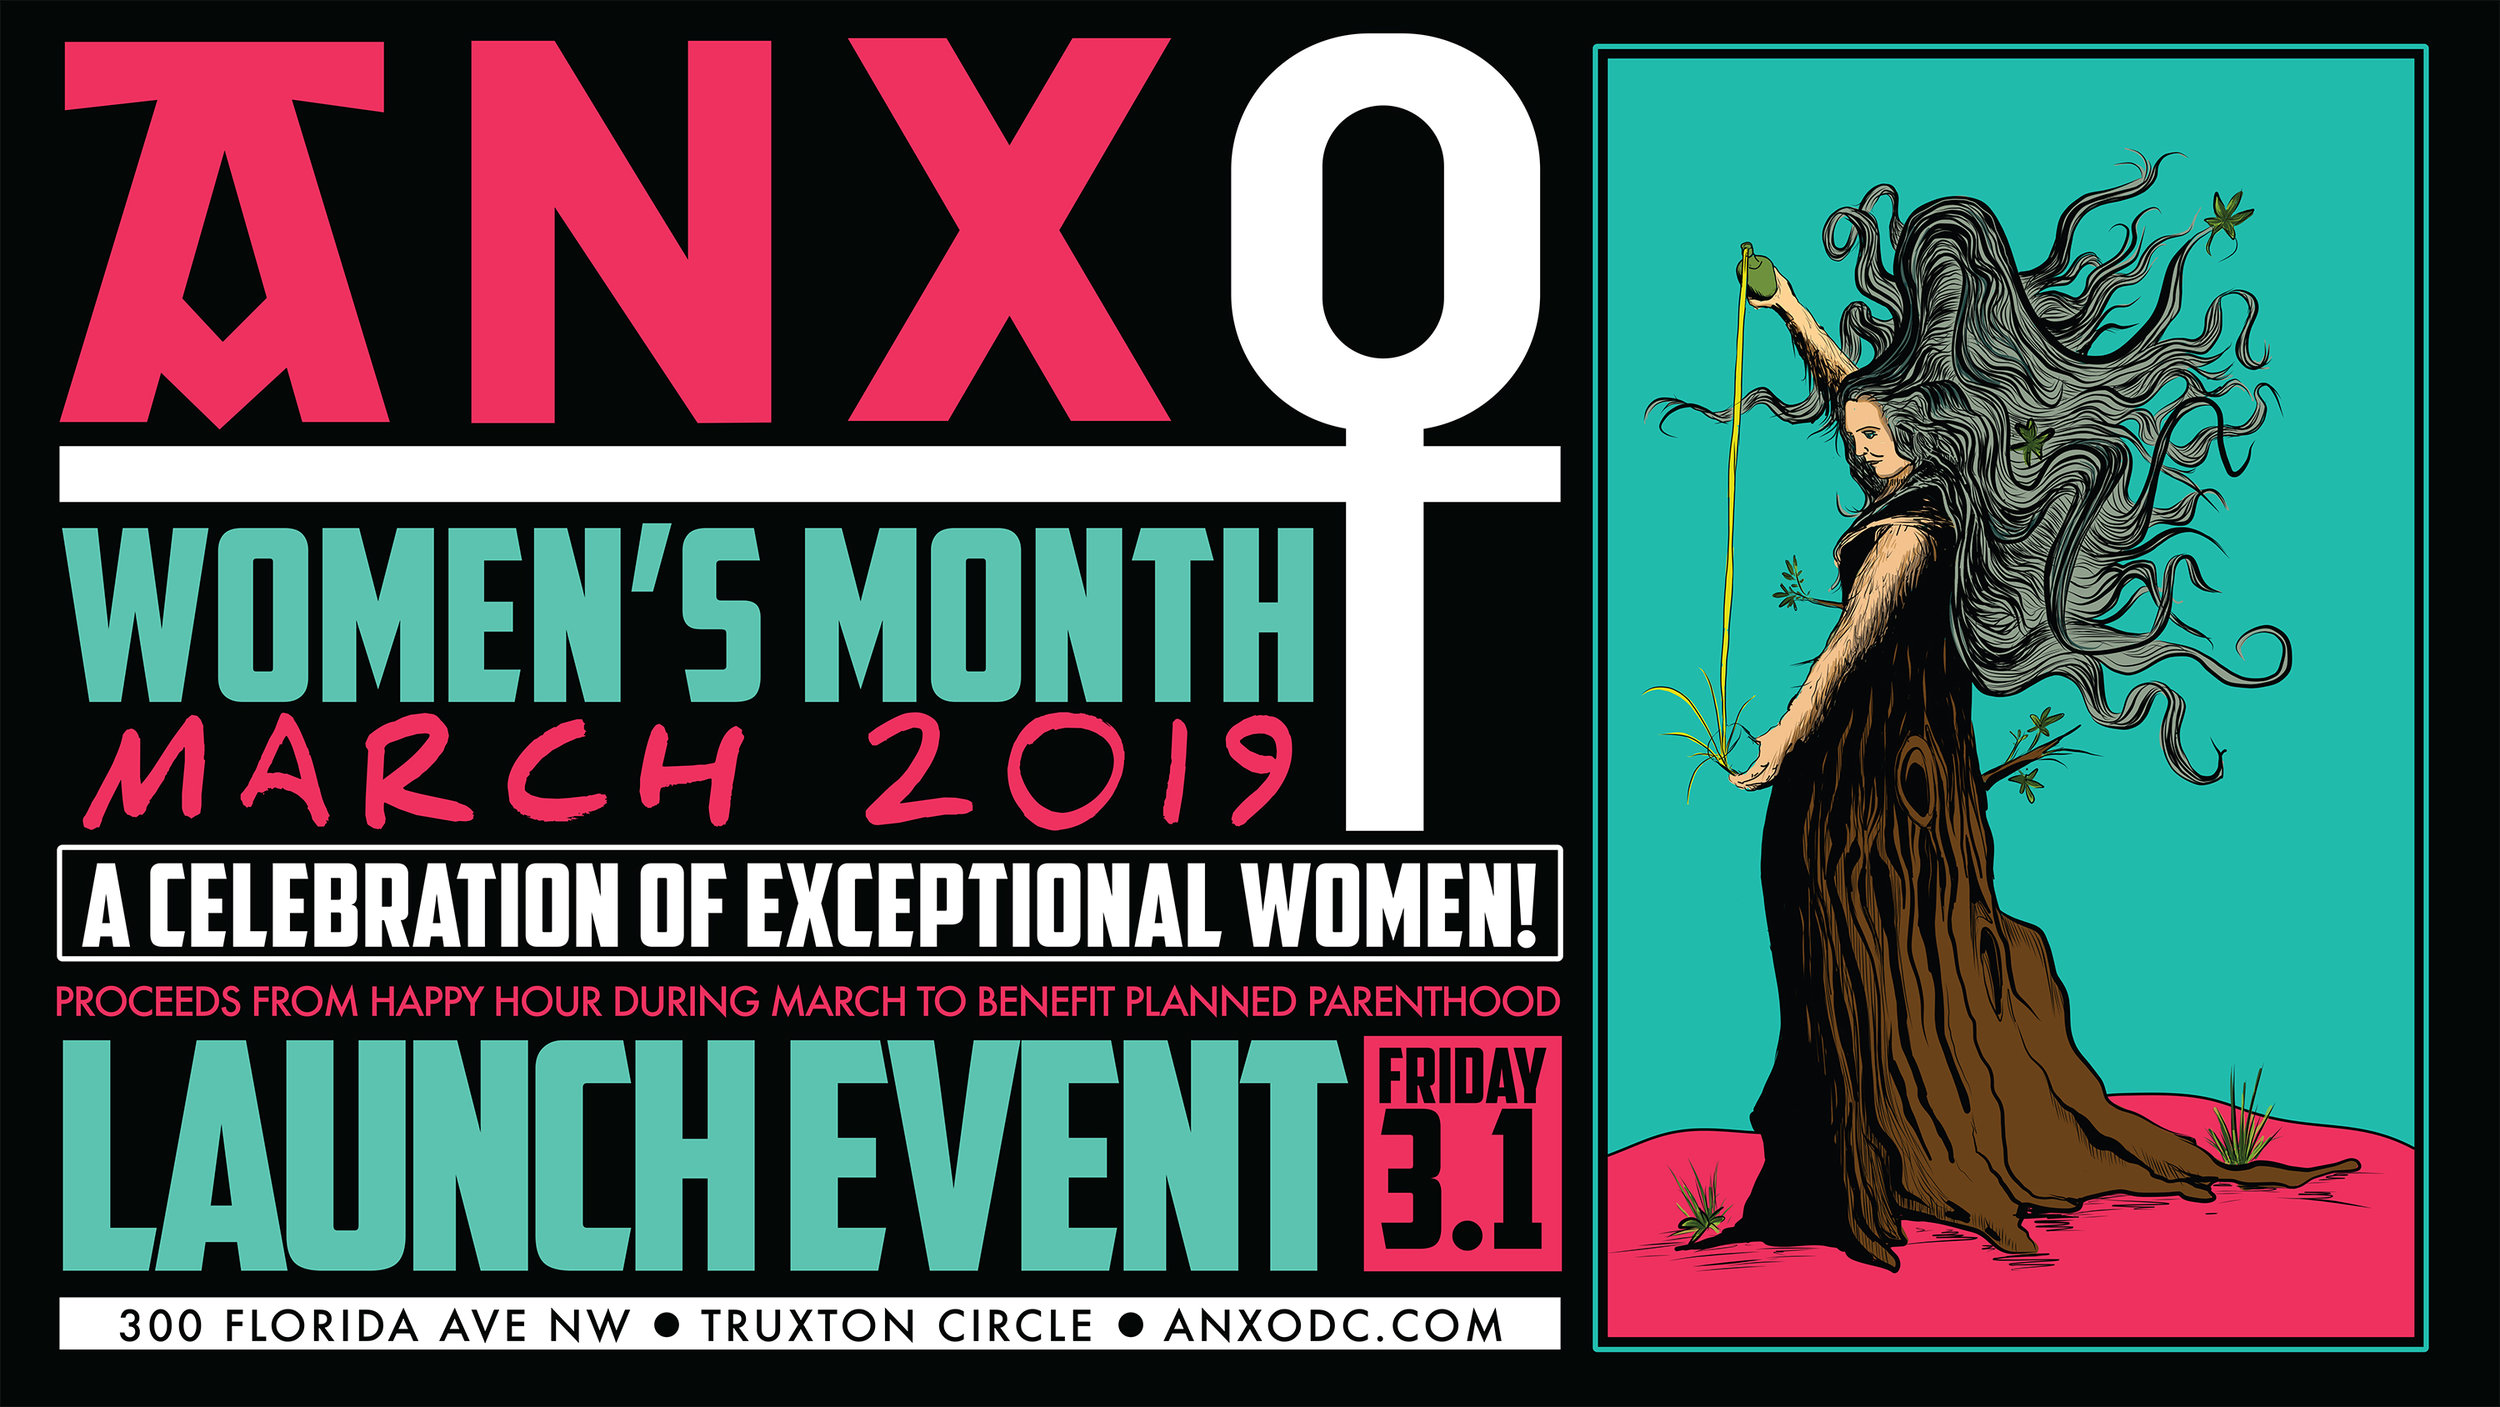 """WOMEN'S MONTH LAUNCH PARTY    FRIDAY, MARCH 15PM-11PM   All March we'll exclusively pour  ciders, wines, beers & cocktails from female owned/operated businesses.  Our collaborations  """"Nevertheless, We Persisted"""" Dry Cider  (Eden Specialty Ciders) and  """"Never Doubt"""" Brut IPA (Denizens Brewing Co) will debut on draft at the launch and proceeds from happy hour will be donated to our local Planned Parenthood chapter!"""